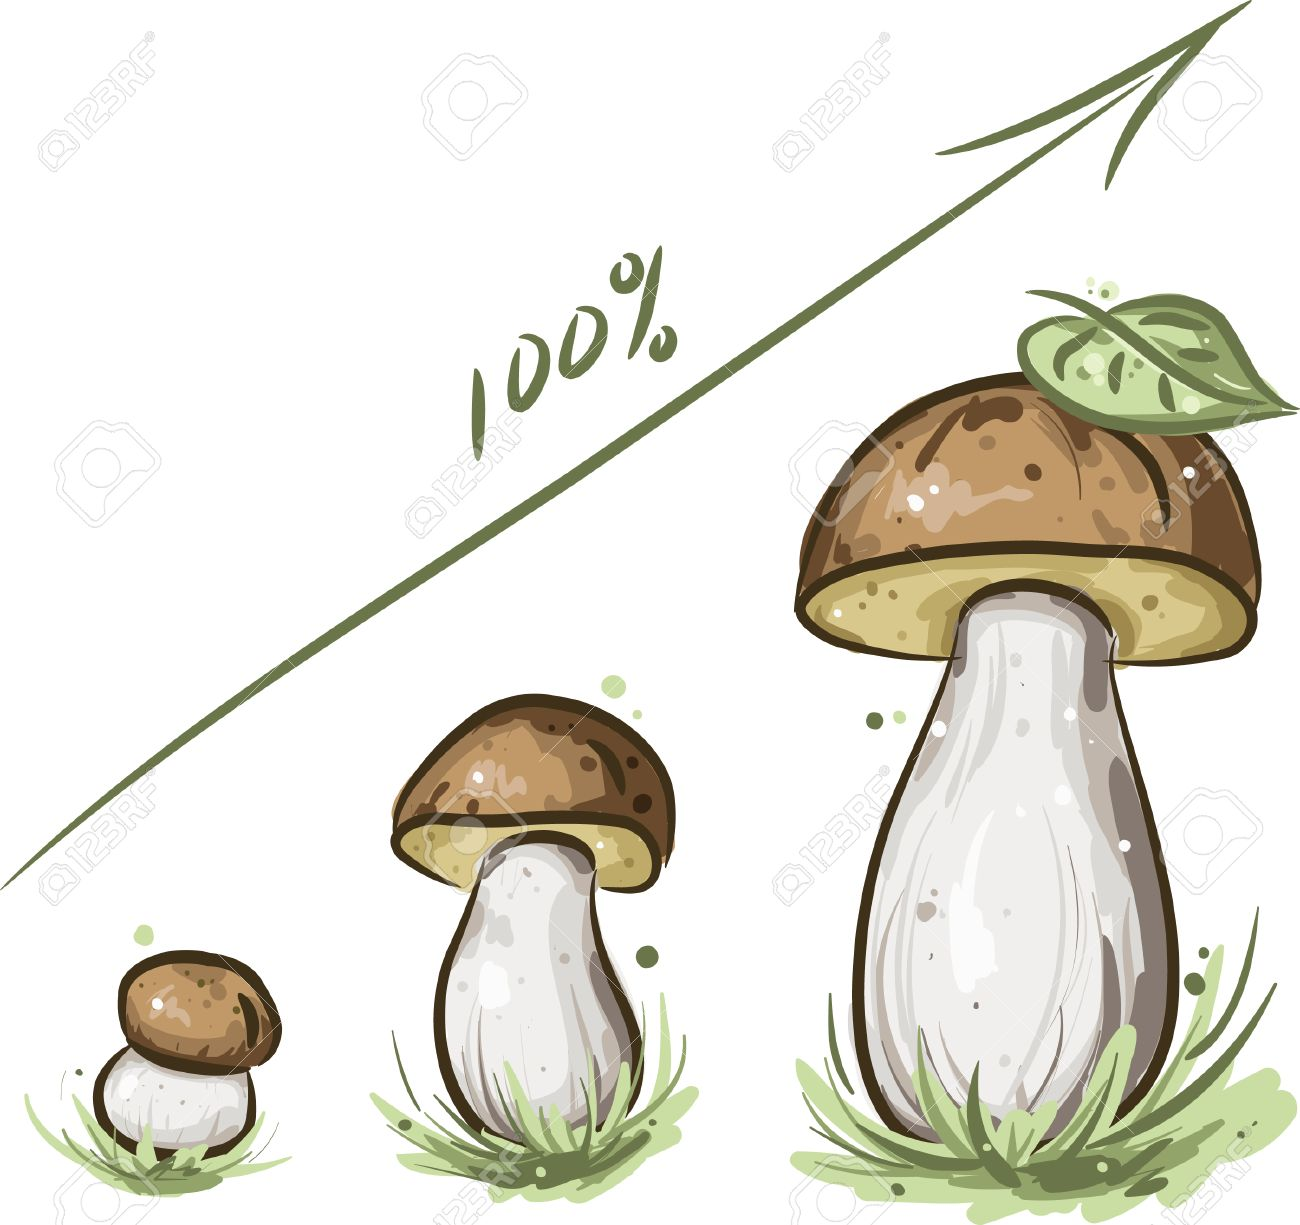 diagram of growth of mushroom stock vector - 5881288